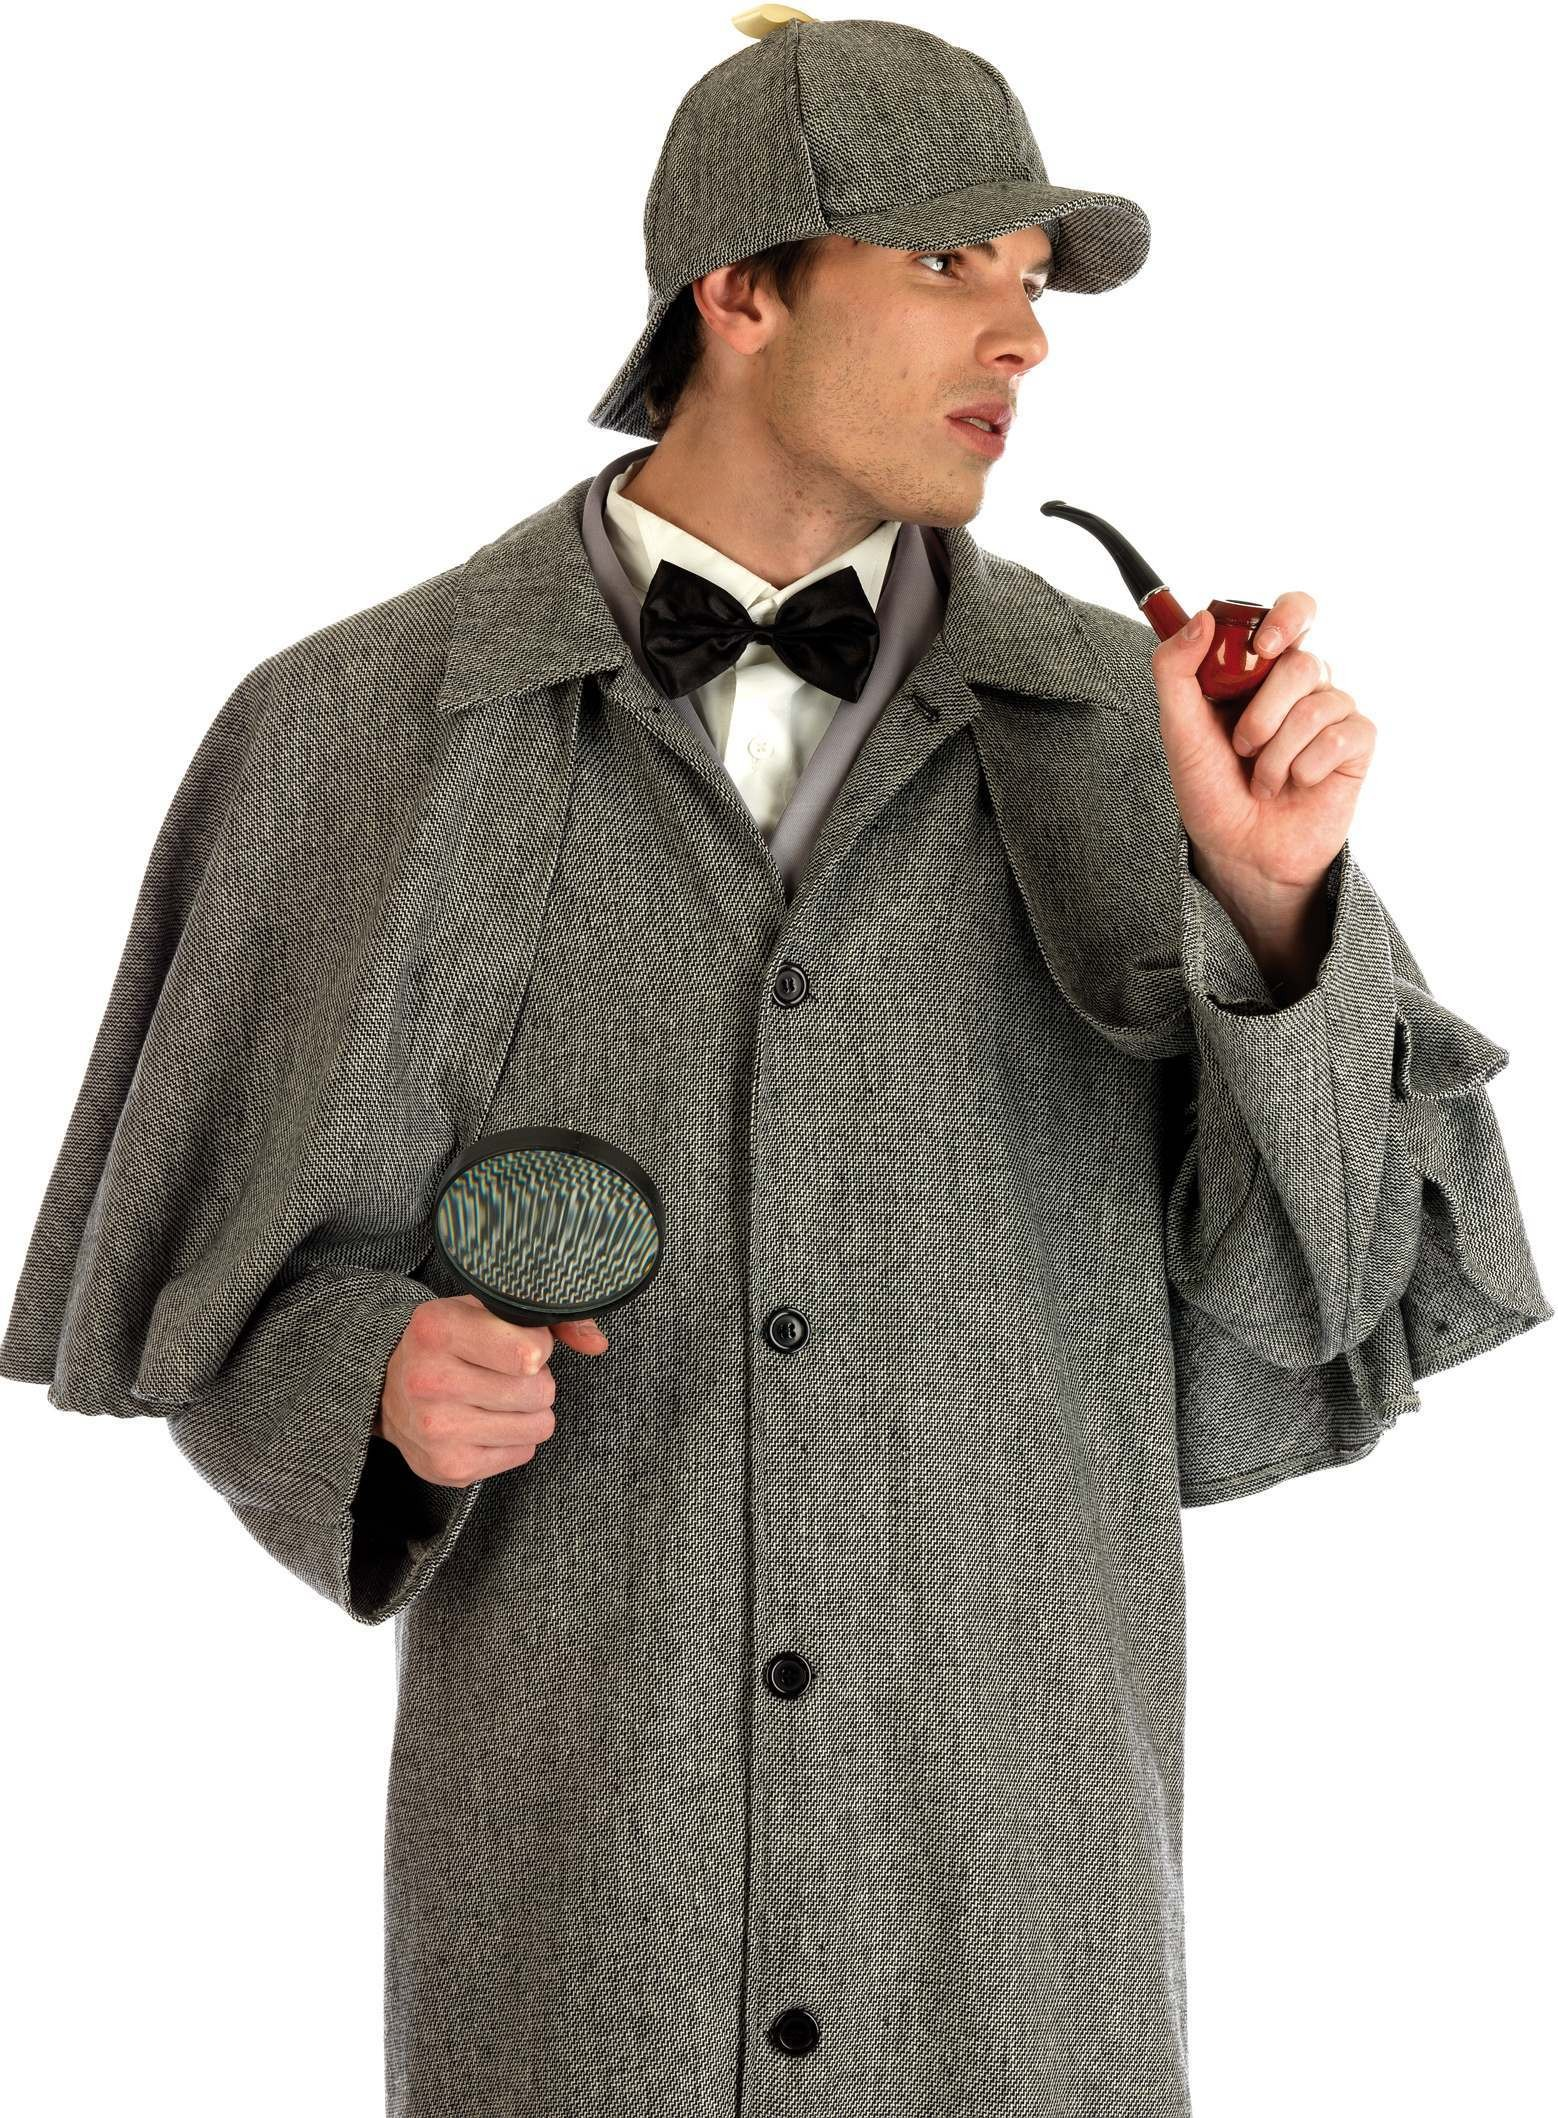 Victorian Detective Fancy Dress Costume Mens (Old English)